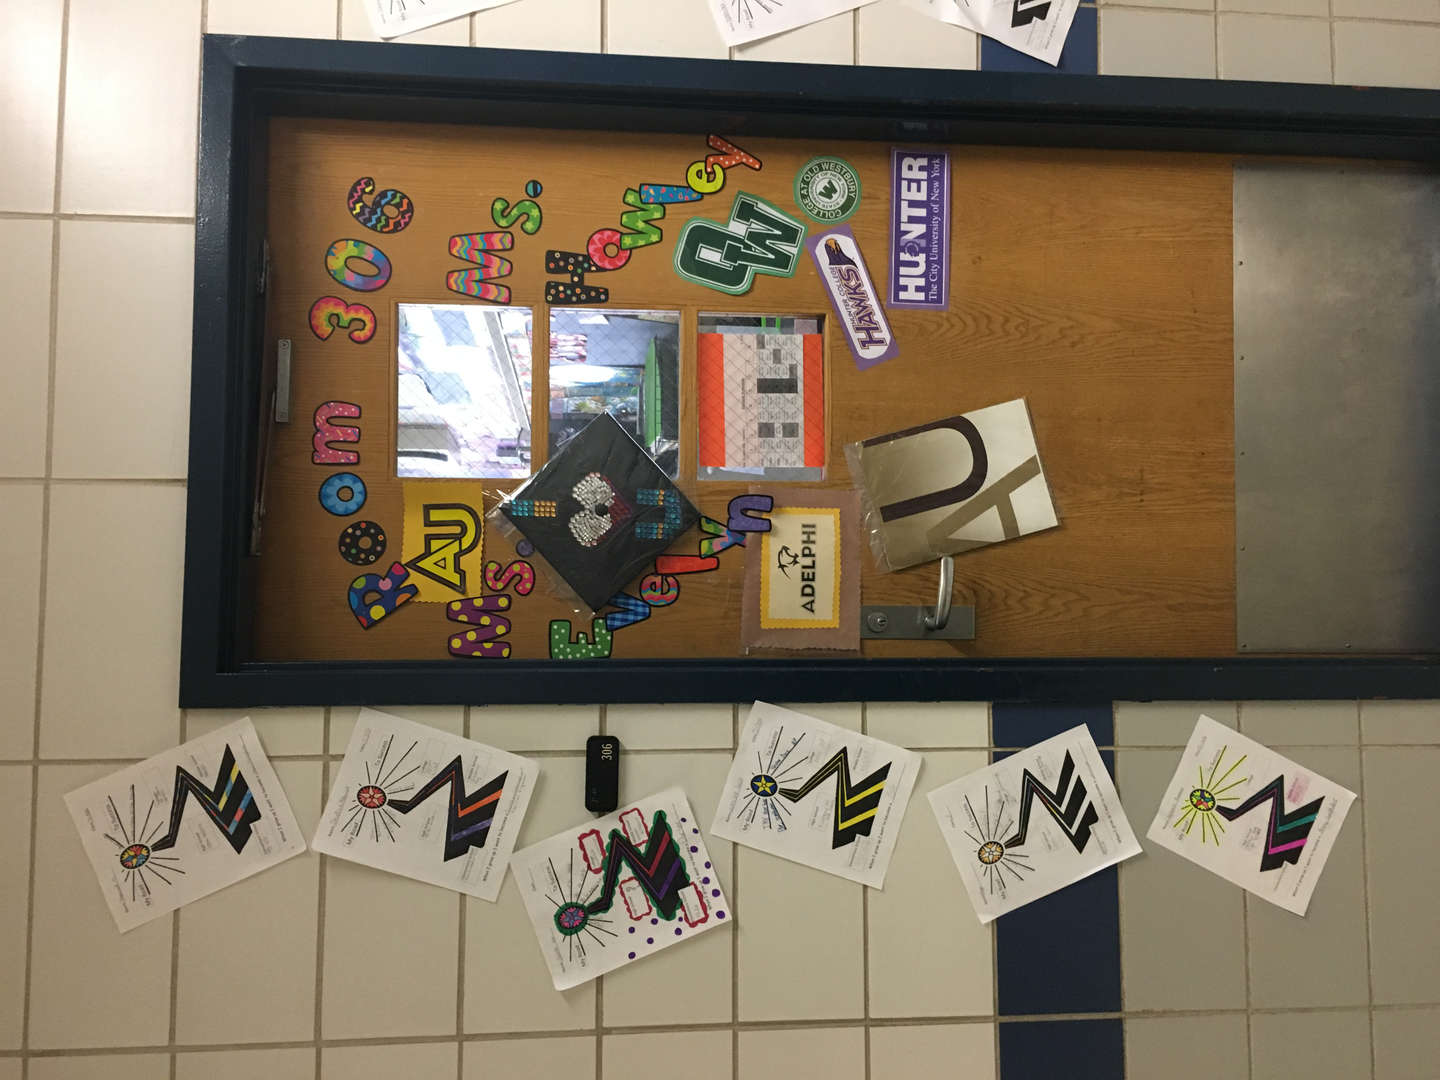 Door of Room 306 decked out with college stickers